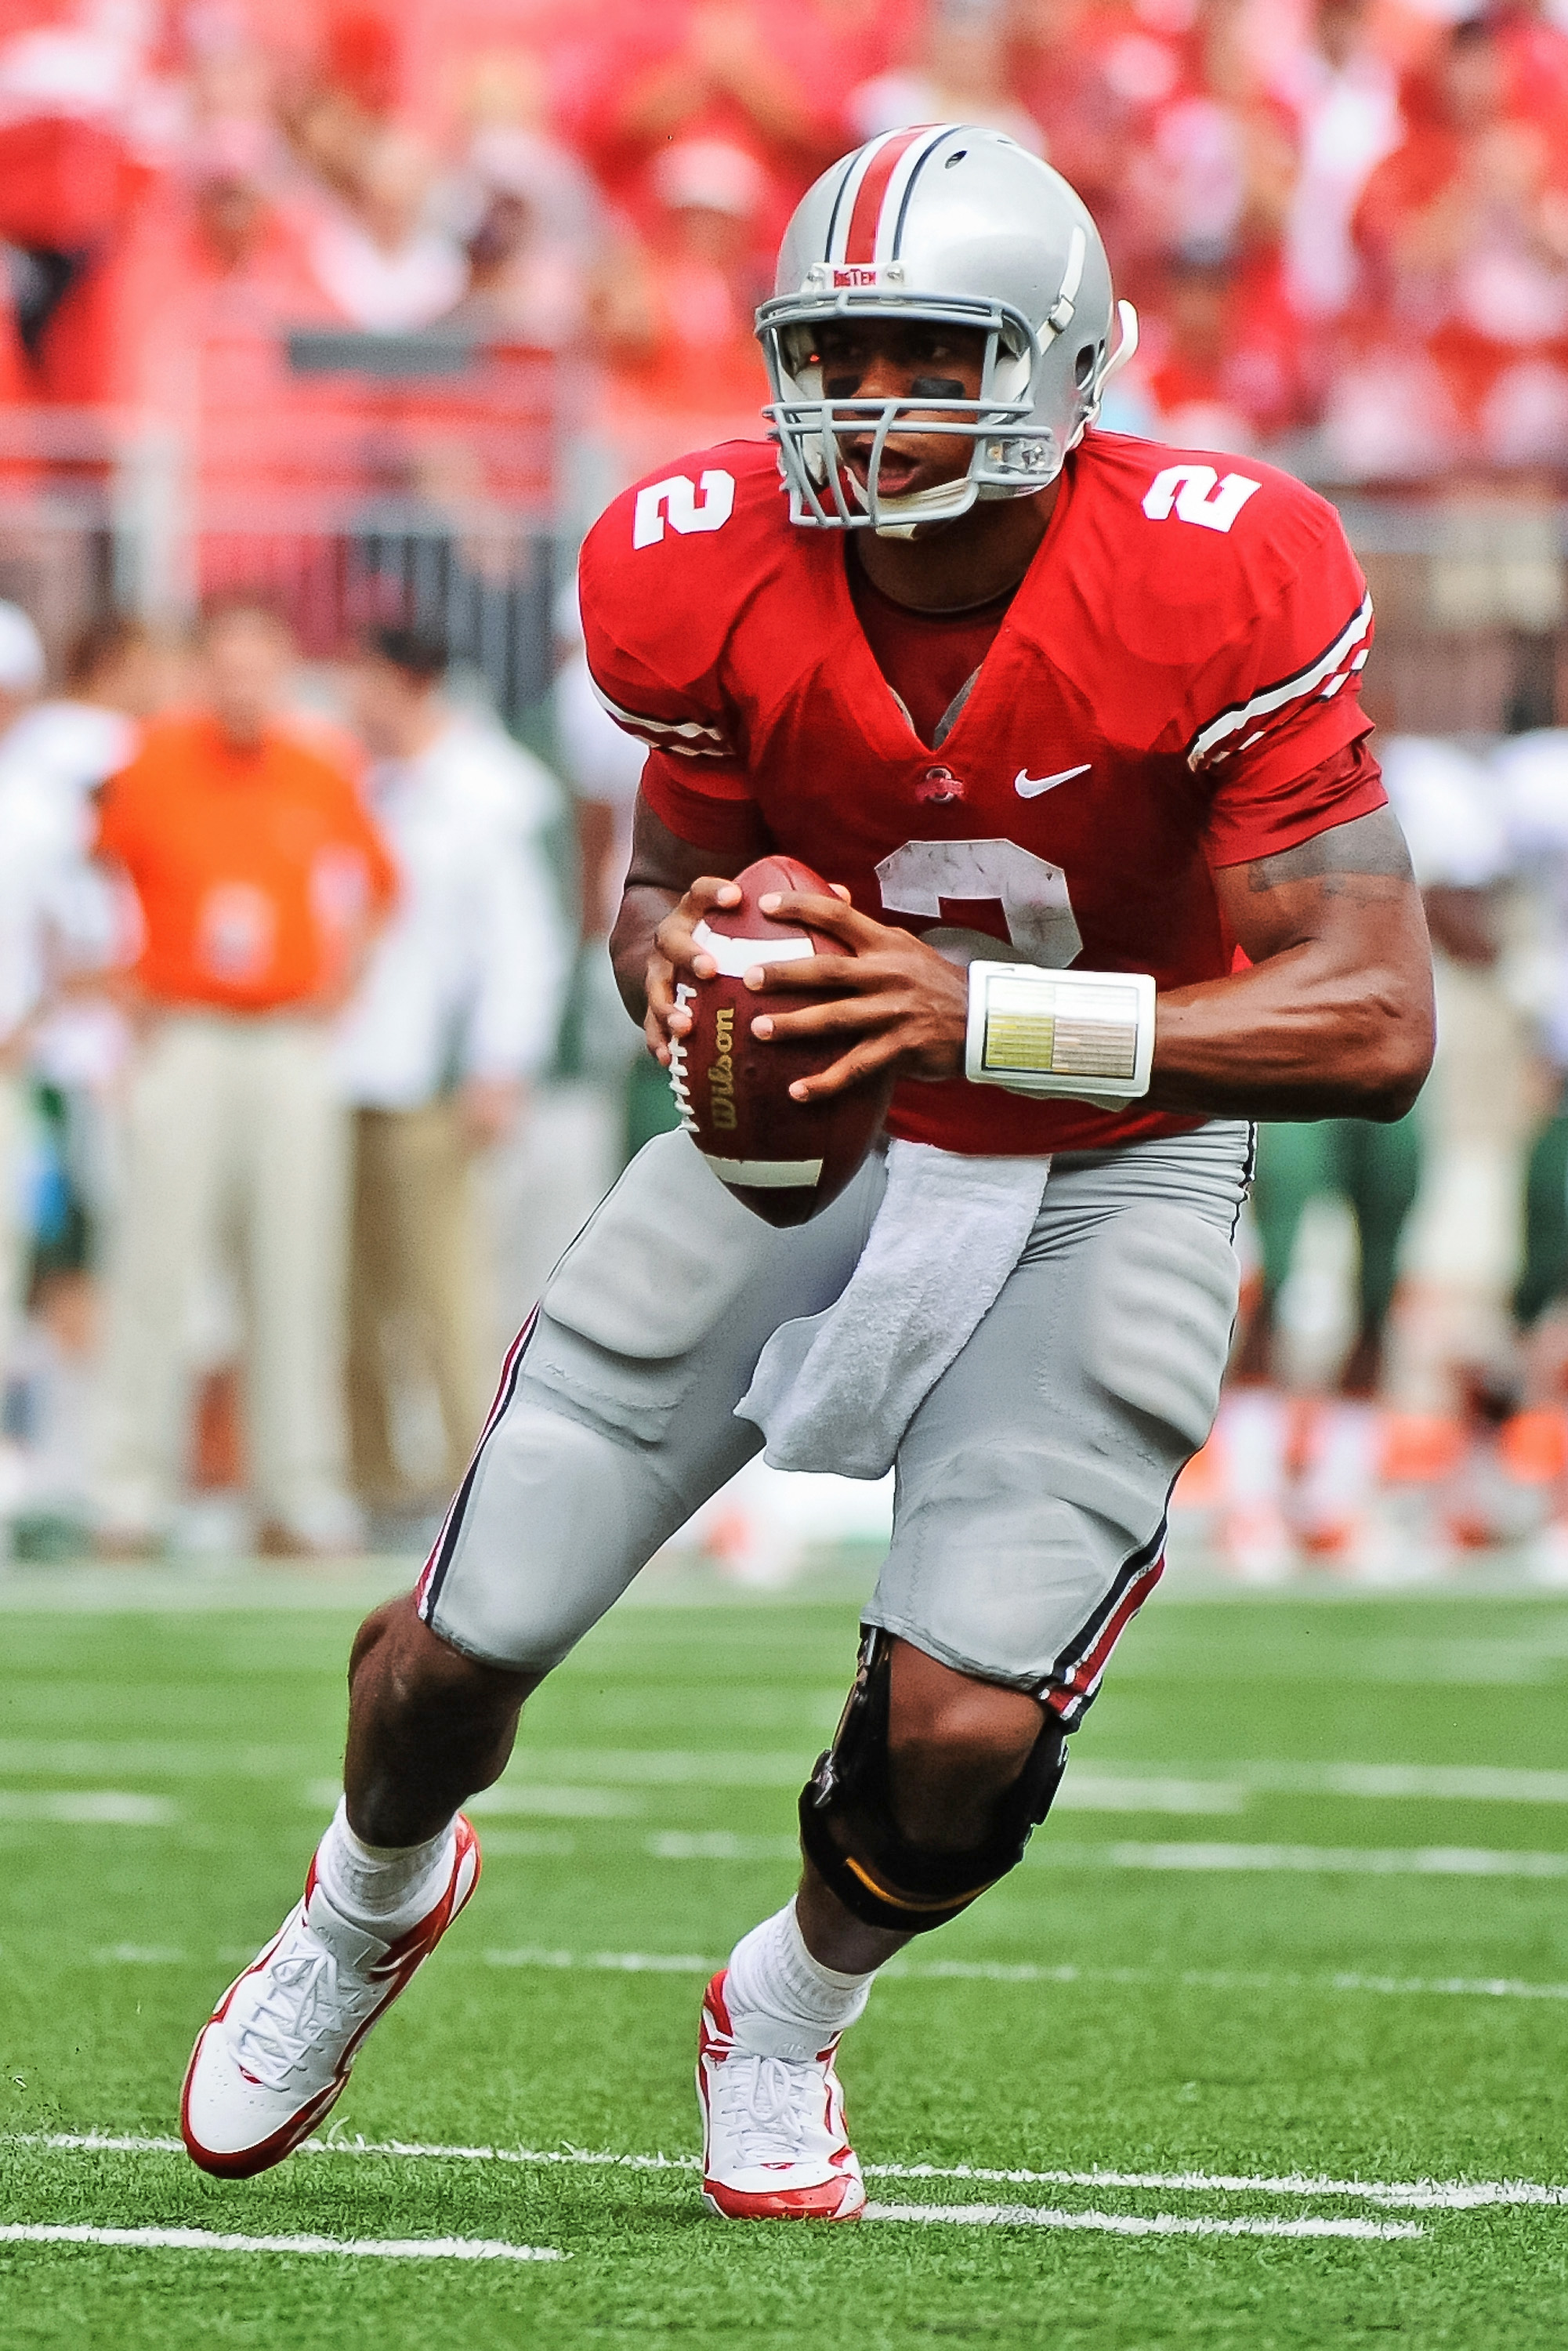 COLUMBUS, OH - SEPTEMBER 11:  Quarterback Terrelle Pryor #2 of the Ohio State Buckeyes runs with the ball against the Miami Hurricanes at Ohio Stadium on September 11, 2010 in Columbus, Ohio.  (Photo by Jamie Sabau/Getty Images)